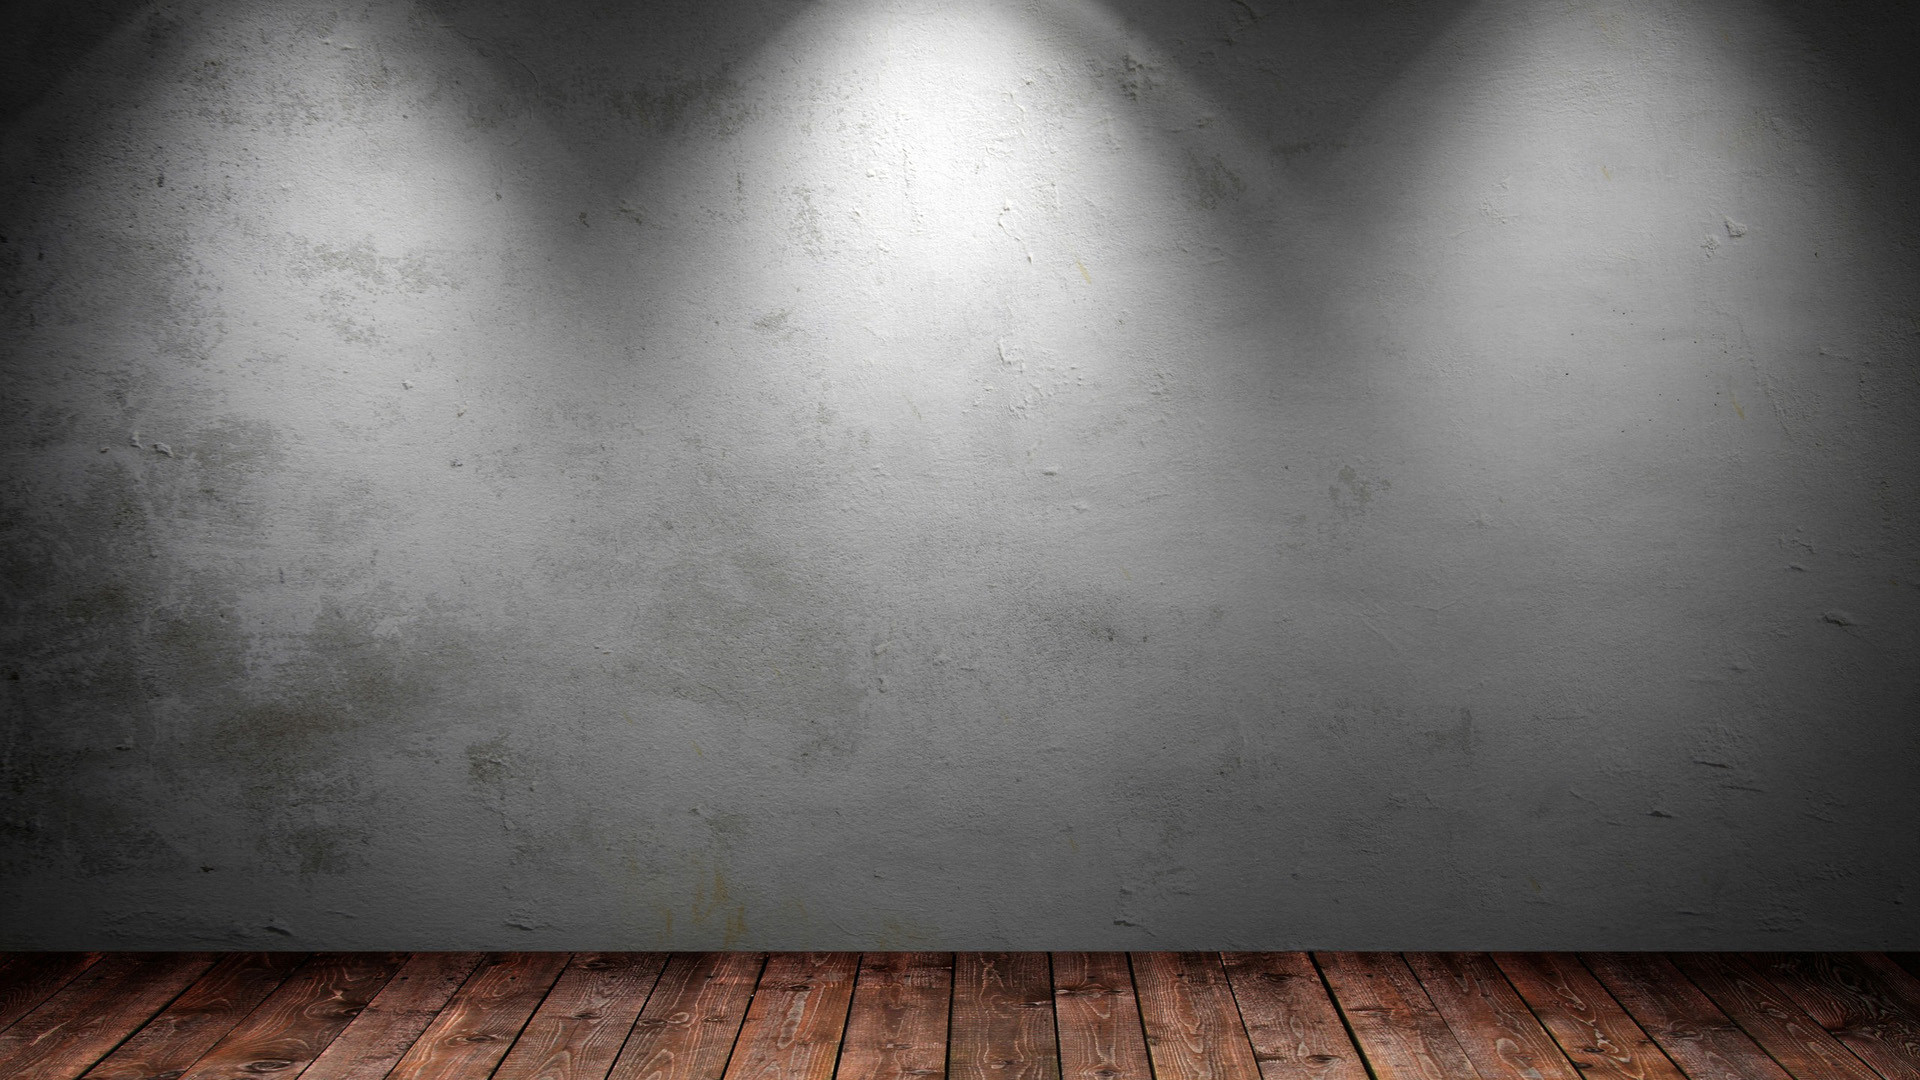 Backgrounds with Walls and Wood Floor